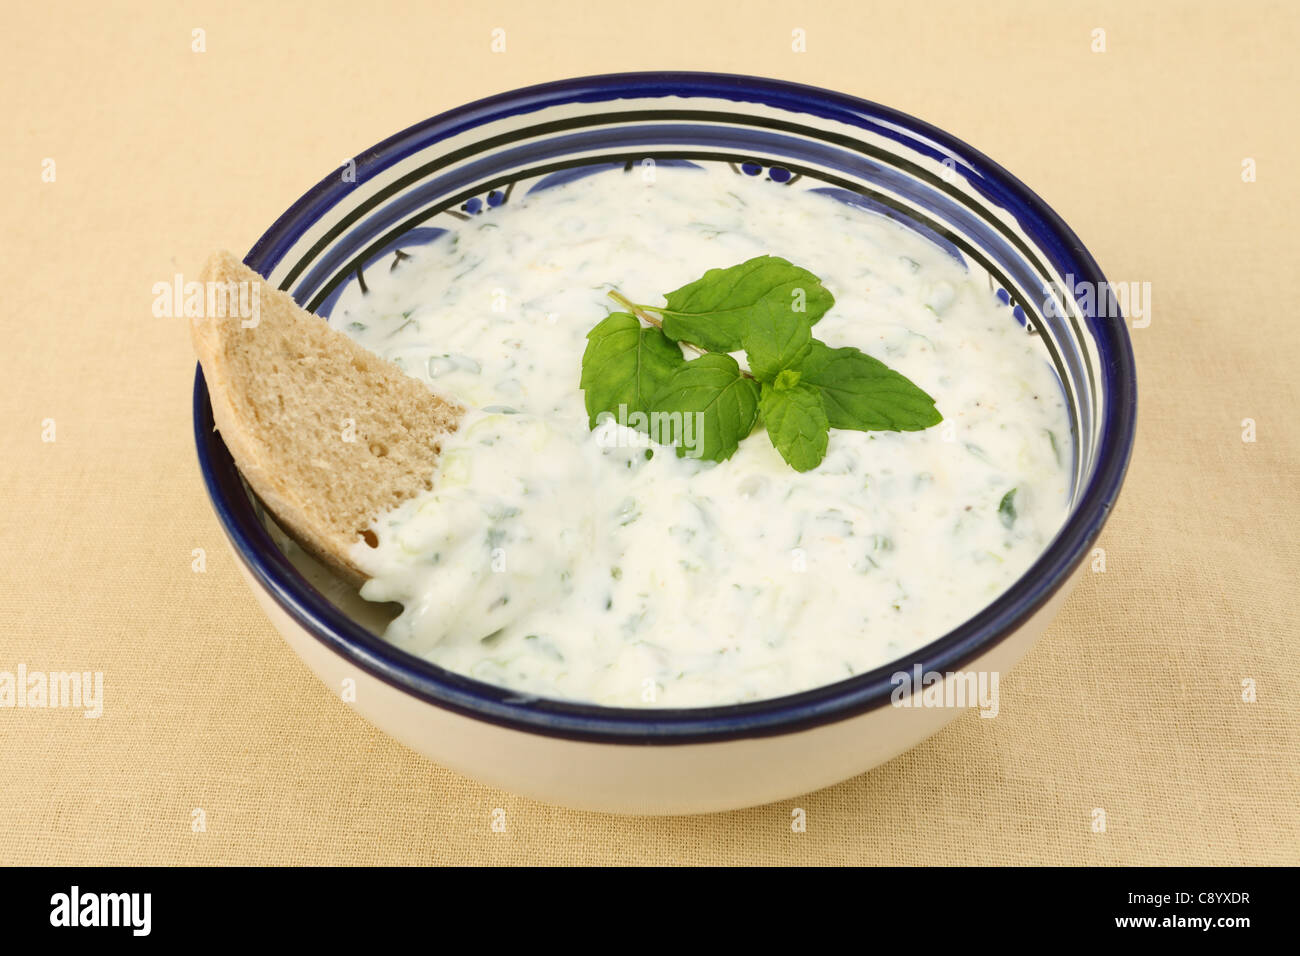 A bowl of tzatziki yoghurt and cucumber dip with a slice of brown farmhouse bread on a woven tablecloth - Stock Image